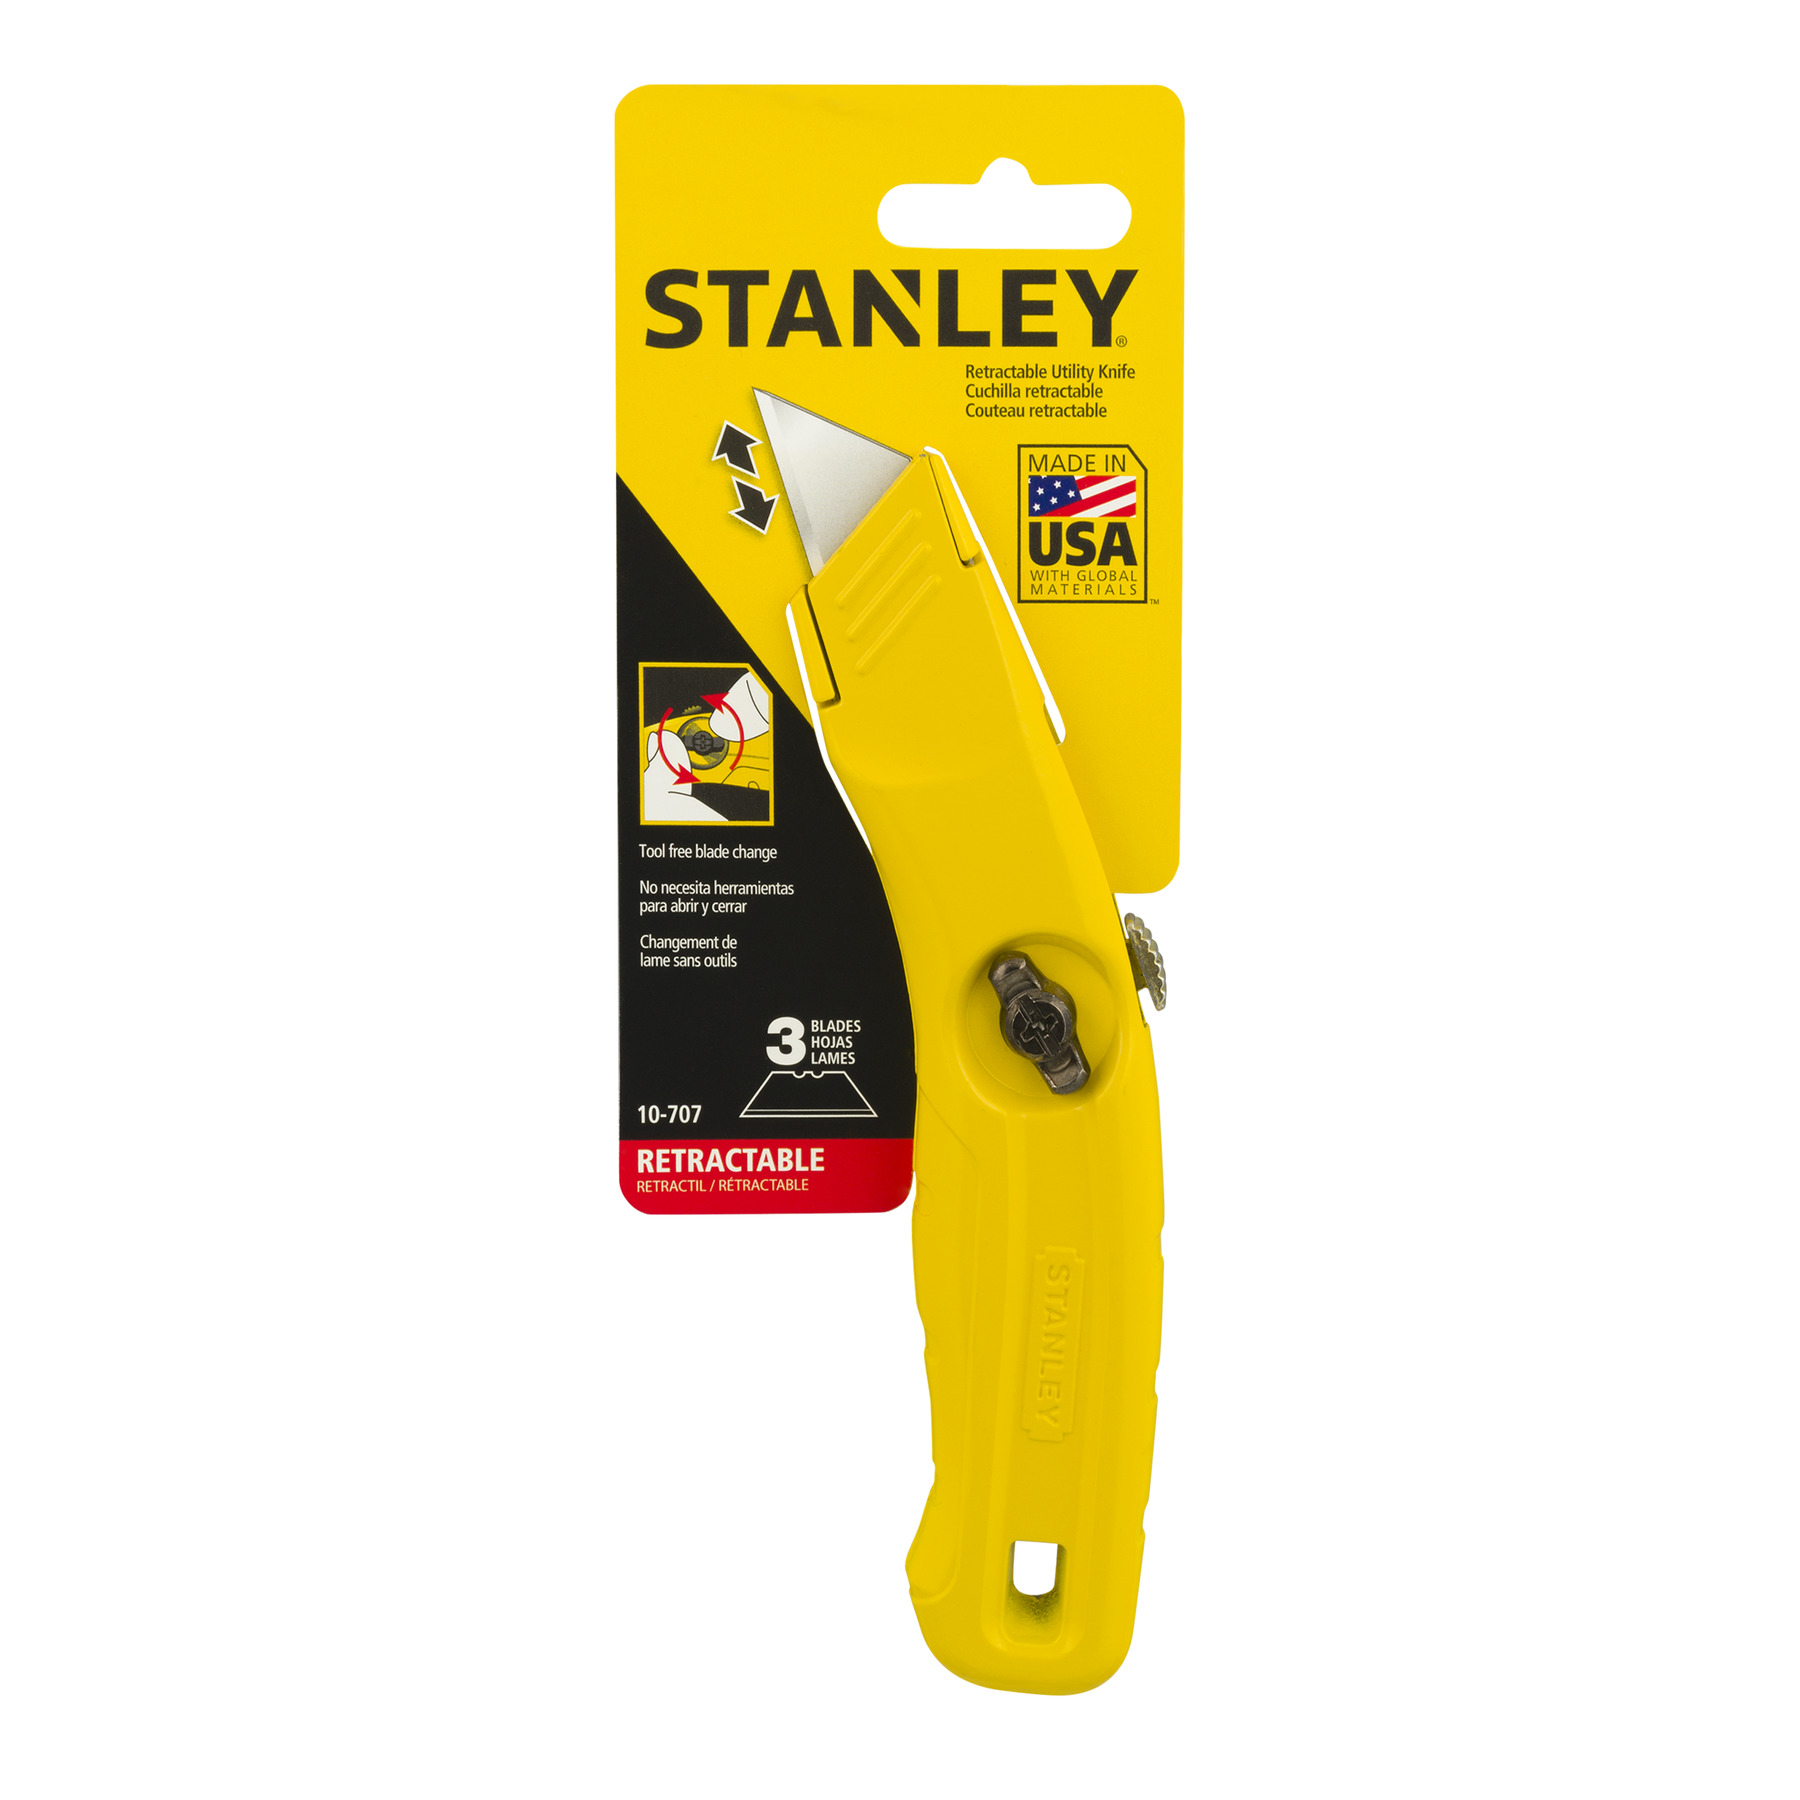 STANLEY 10-707 Retractable Utility Knife